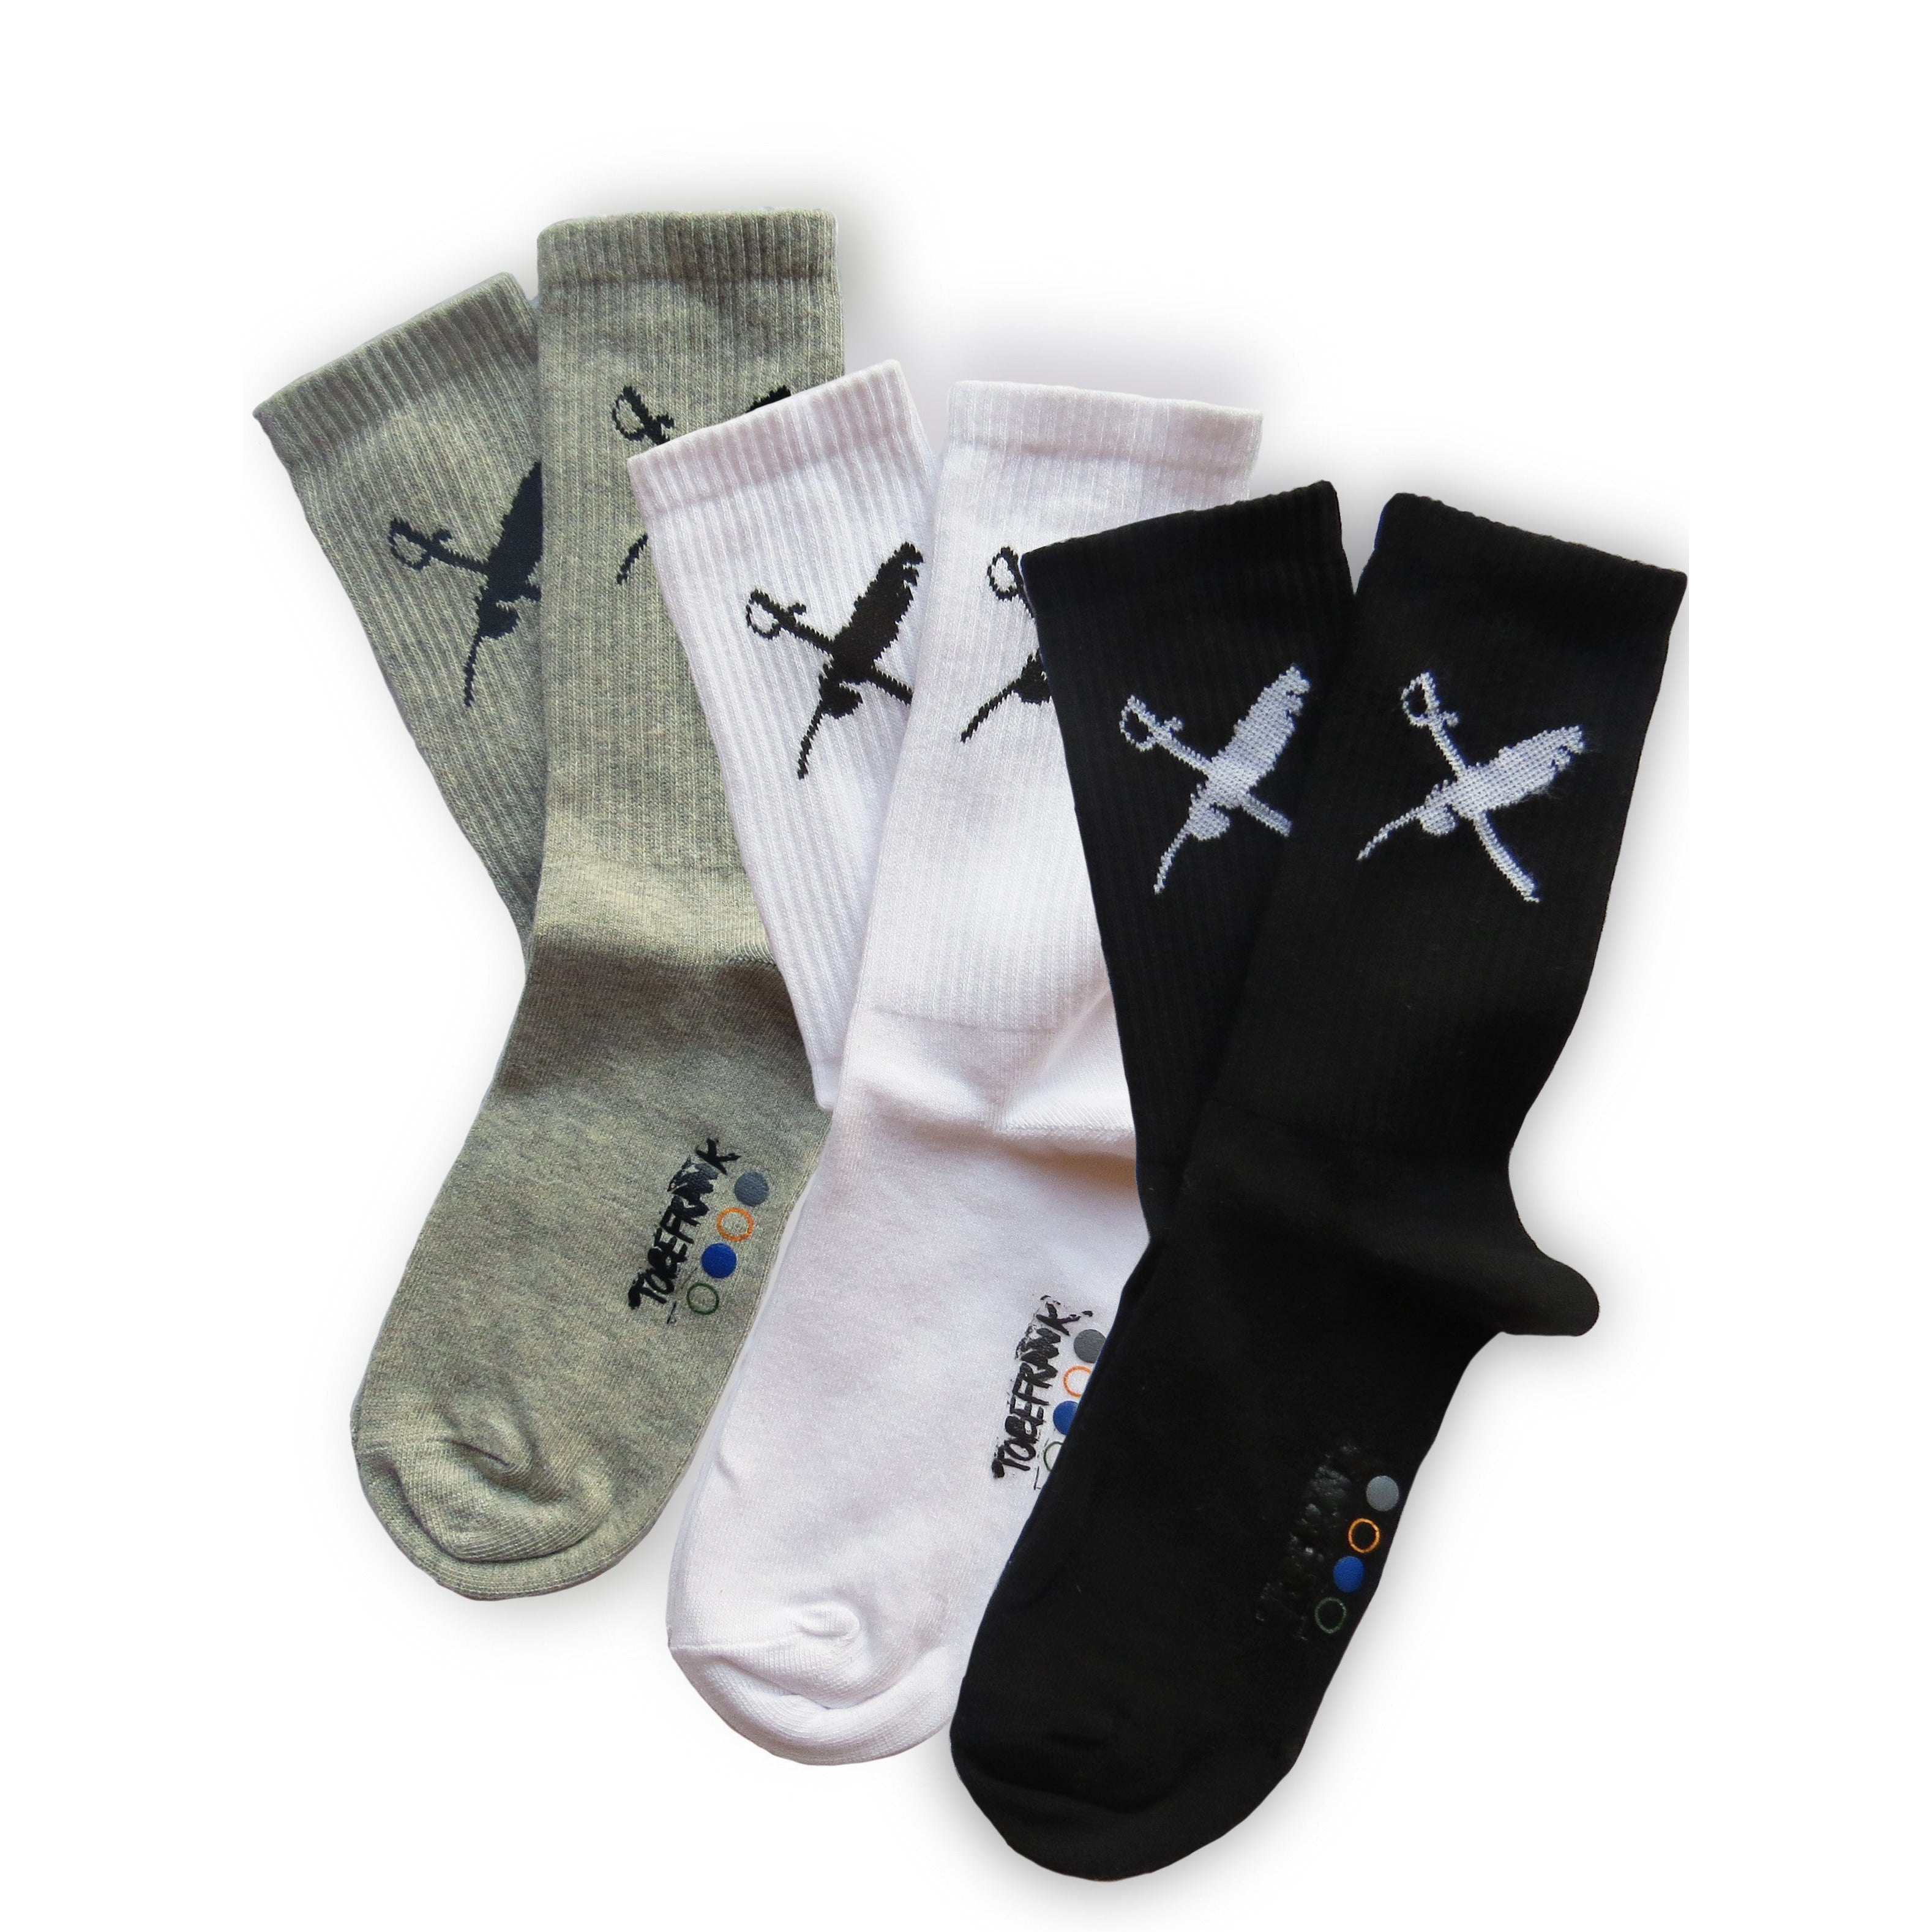 FRANK 3 PACK ORGANIC COTTON SOCKS IN BLACK, WHITE AND GREY